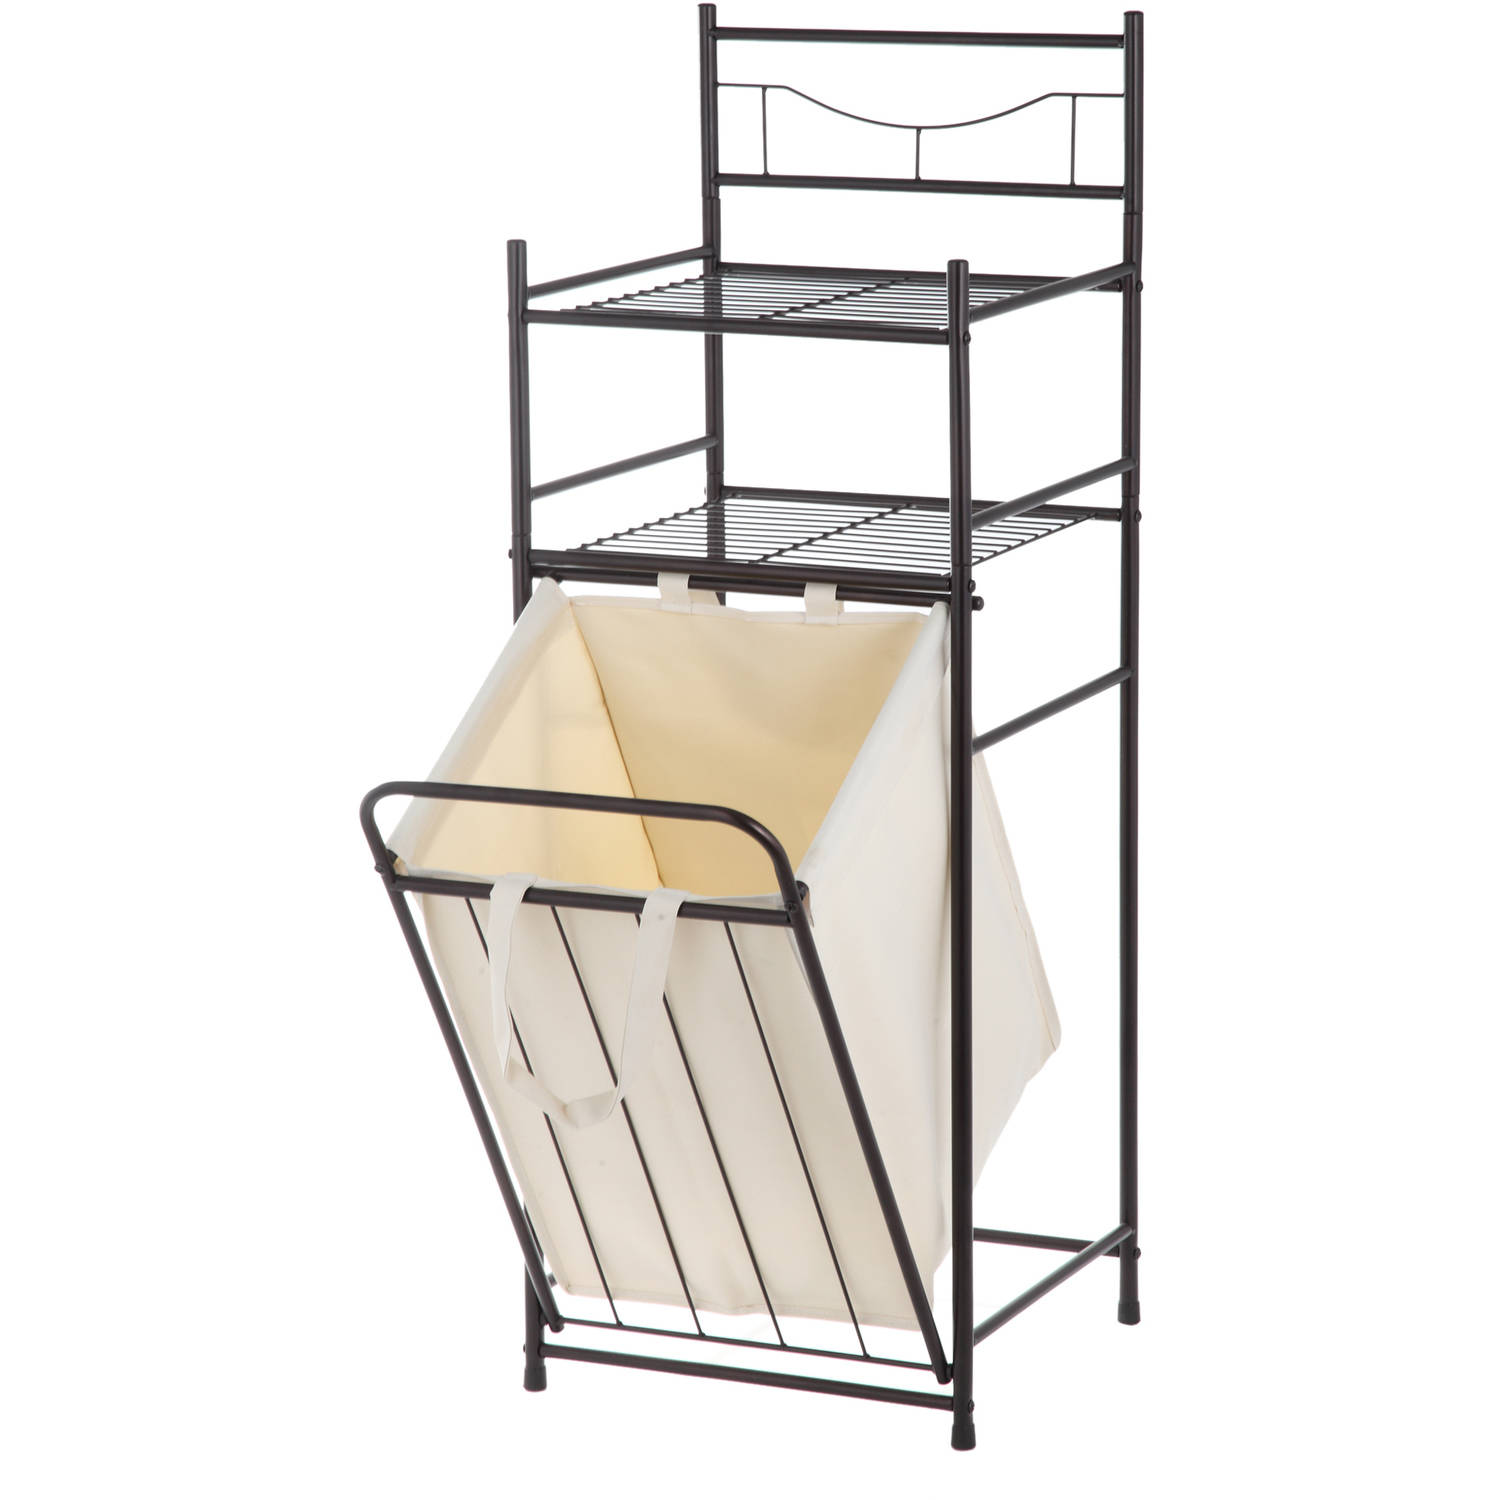 Bathroom Tower Shelf Towel Storage Organizer Laundry Basket Shelves ...